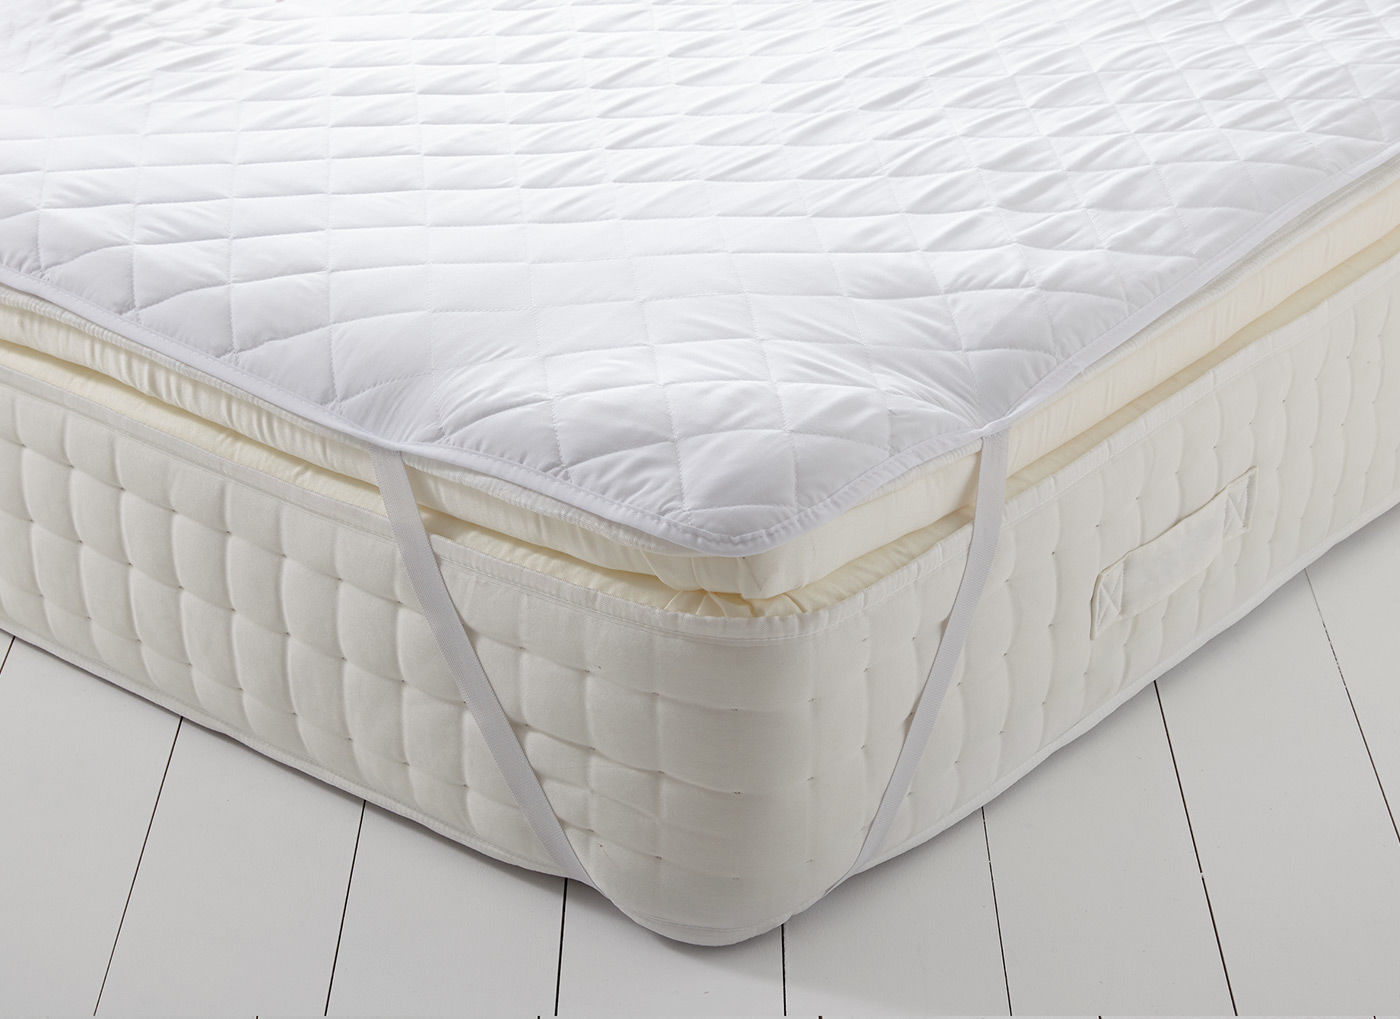 Best Mattress Protector Sleep Experts Advice Best Homes And More